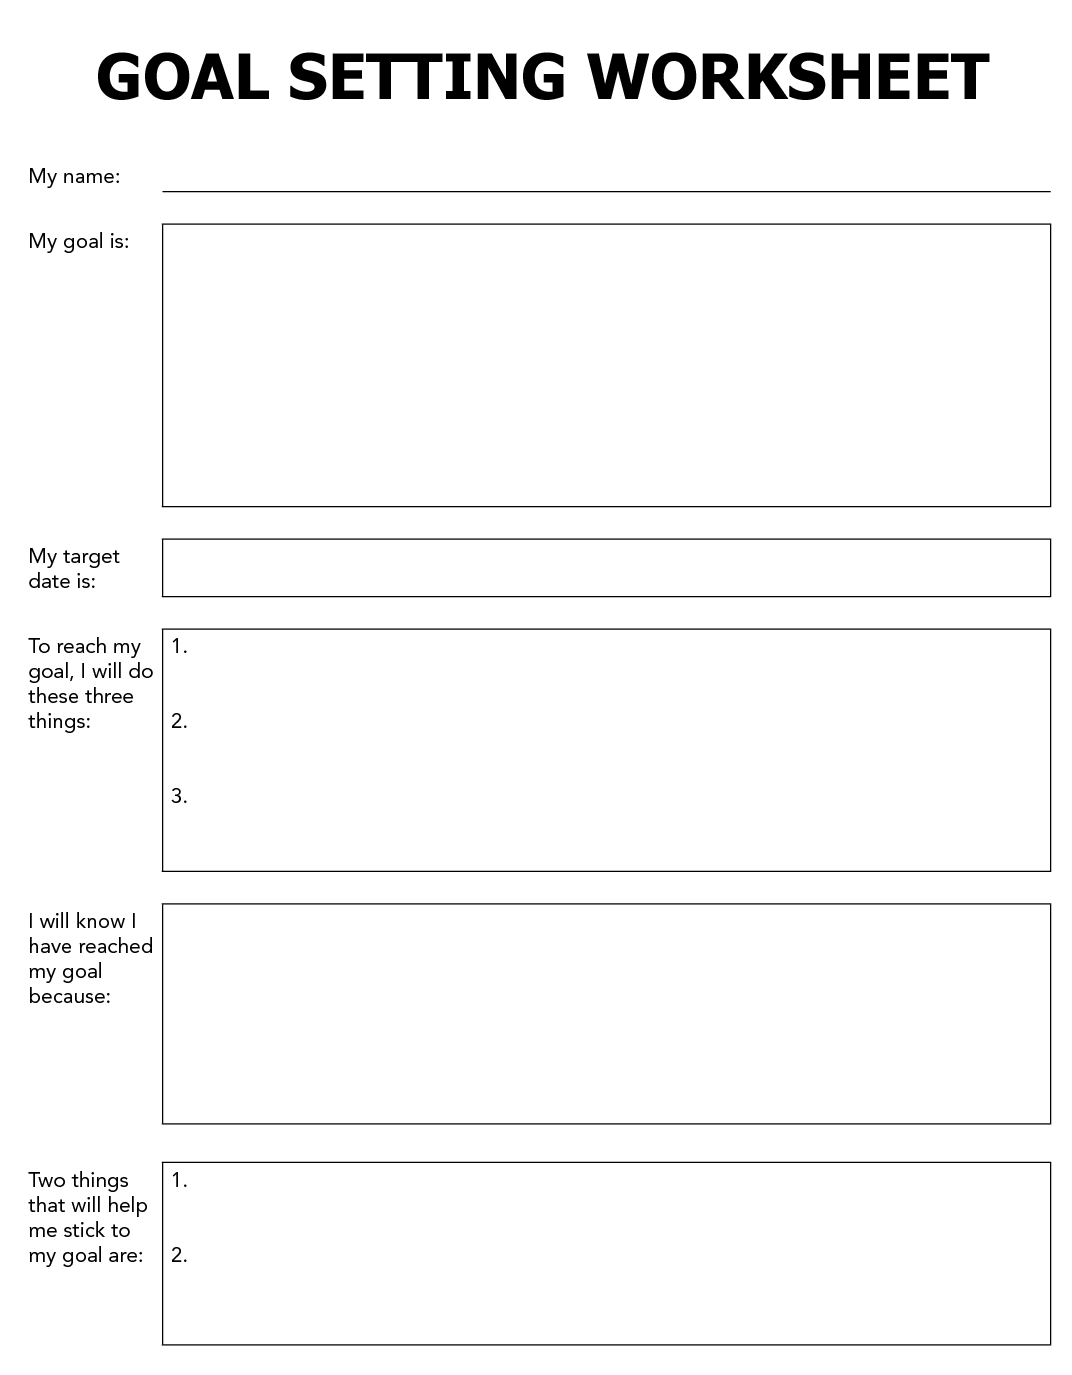 personal reference list template receipt for payment